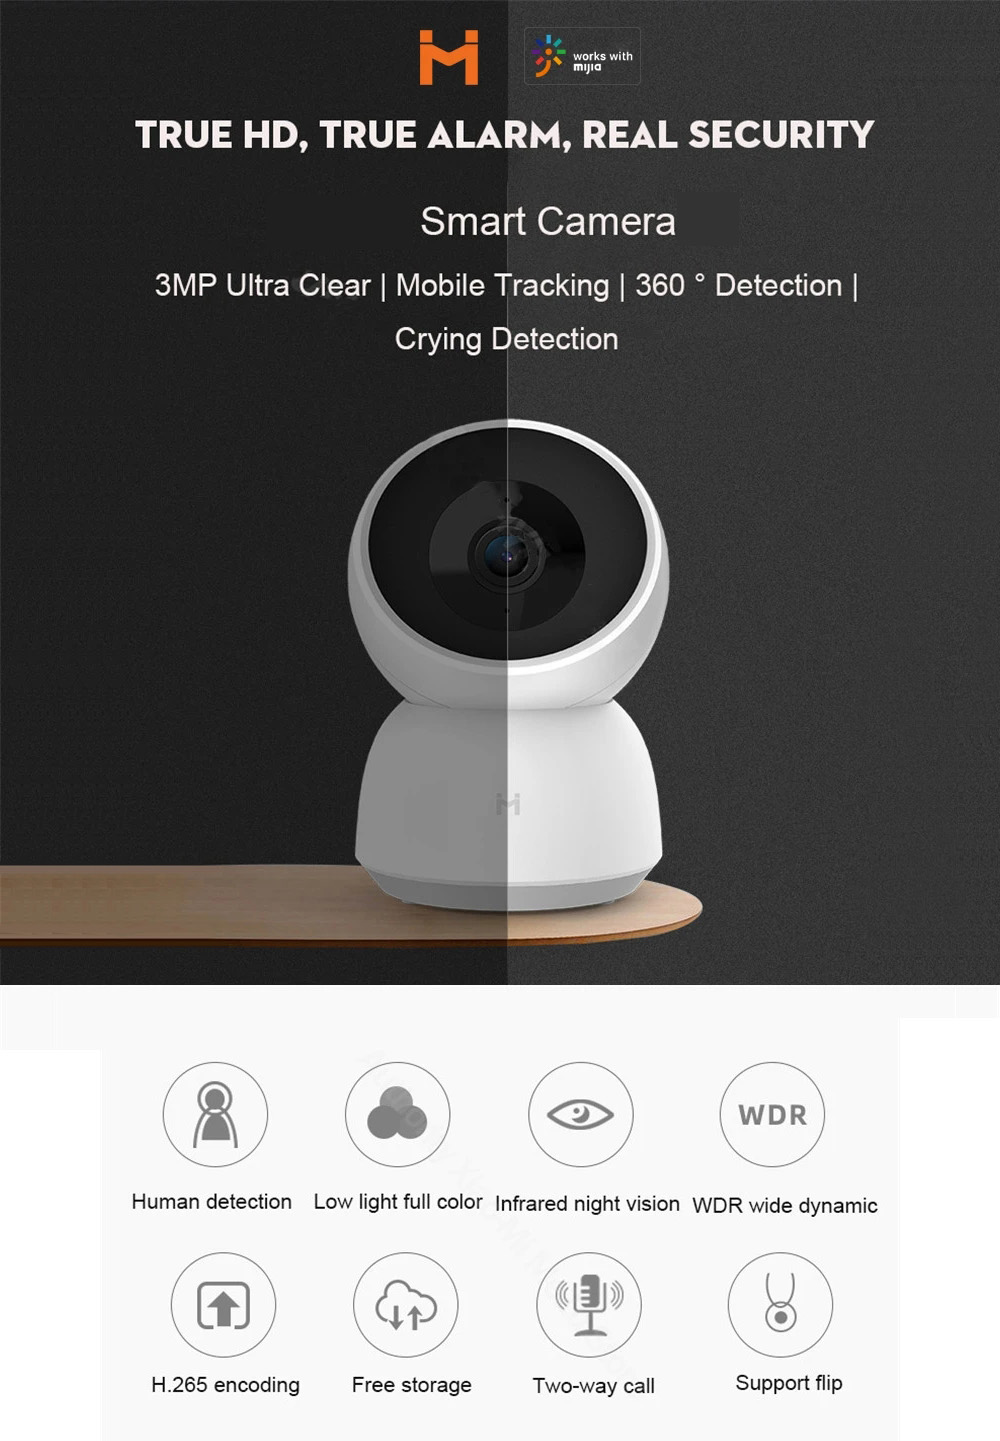 IMILAB A1 CMSXJ19E Smart IP Camera 3MP 1080P 360° PTZ IR Night Vision Home Security Baby Cry Monitor Global Version - White UK Plug